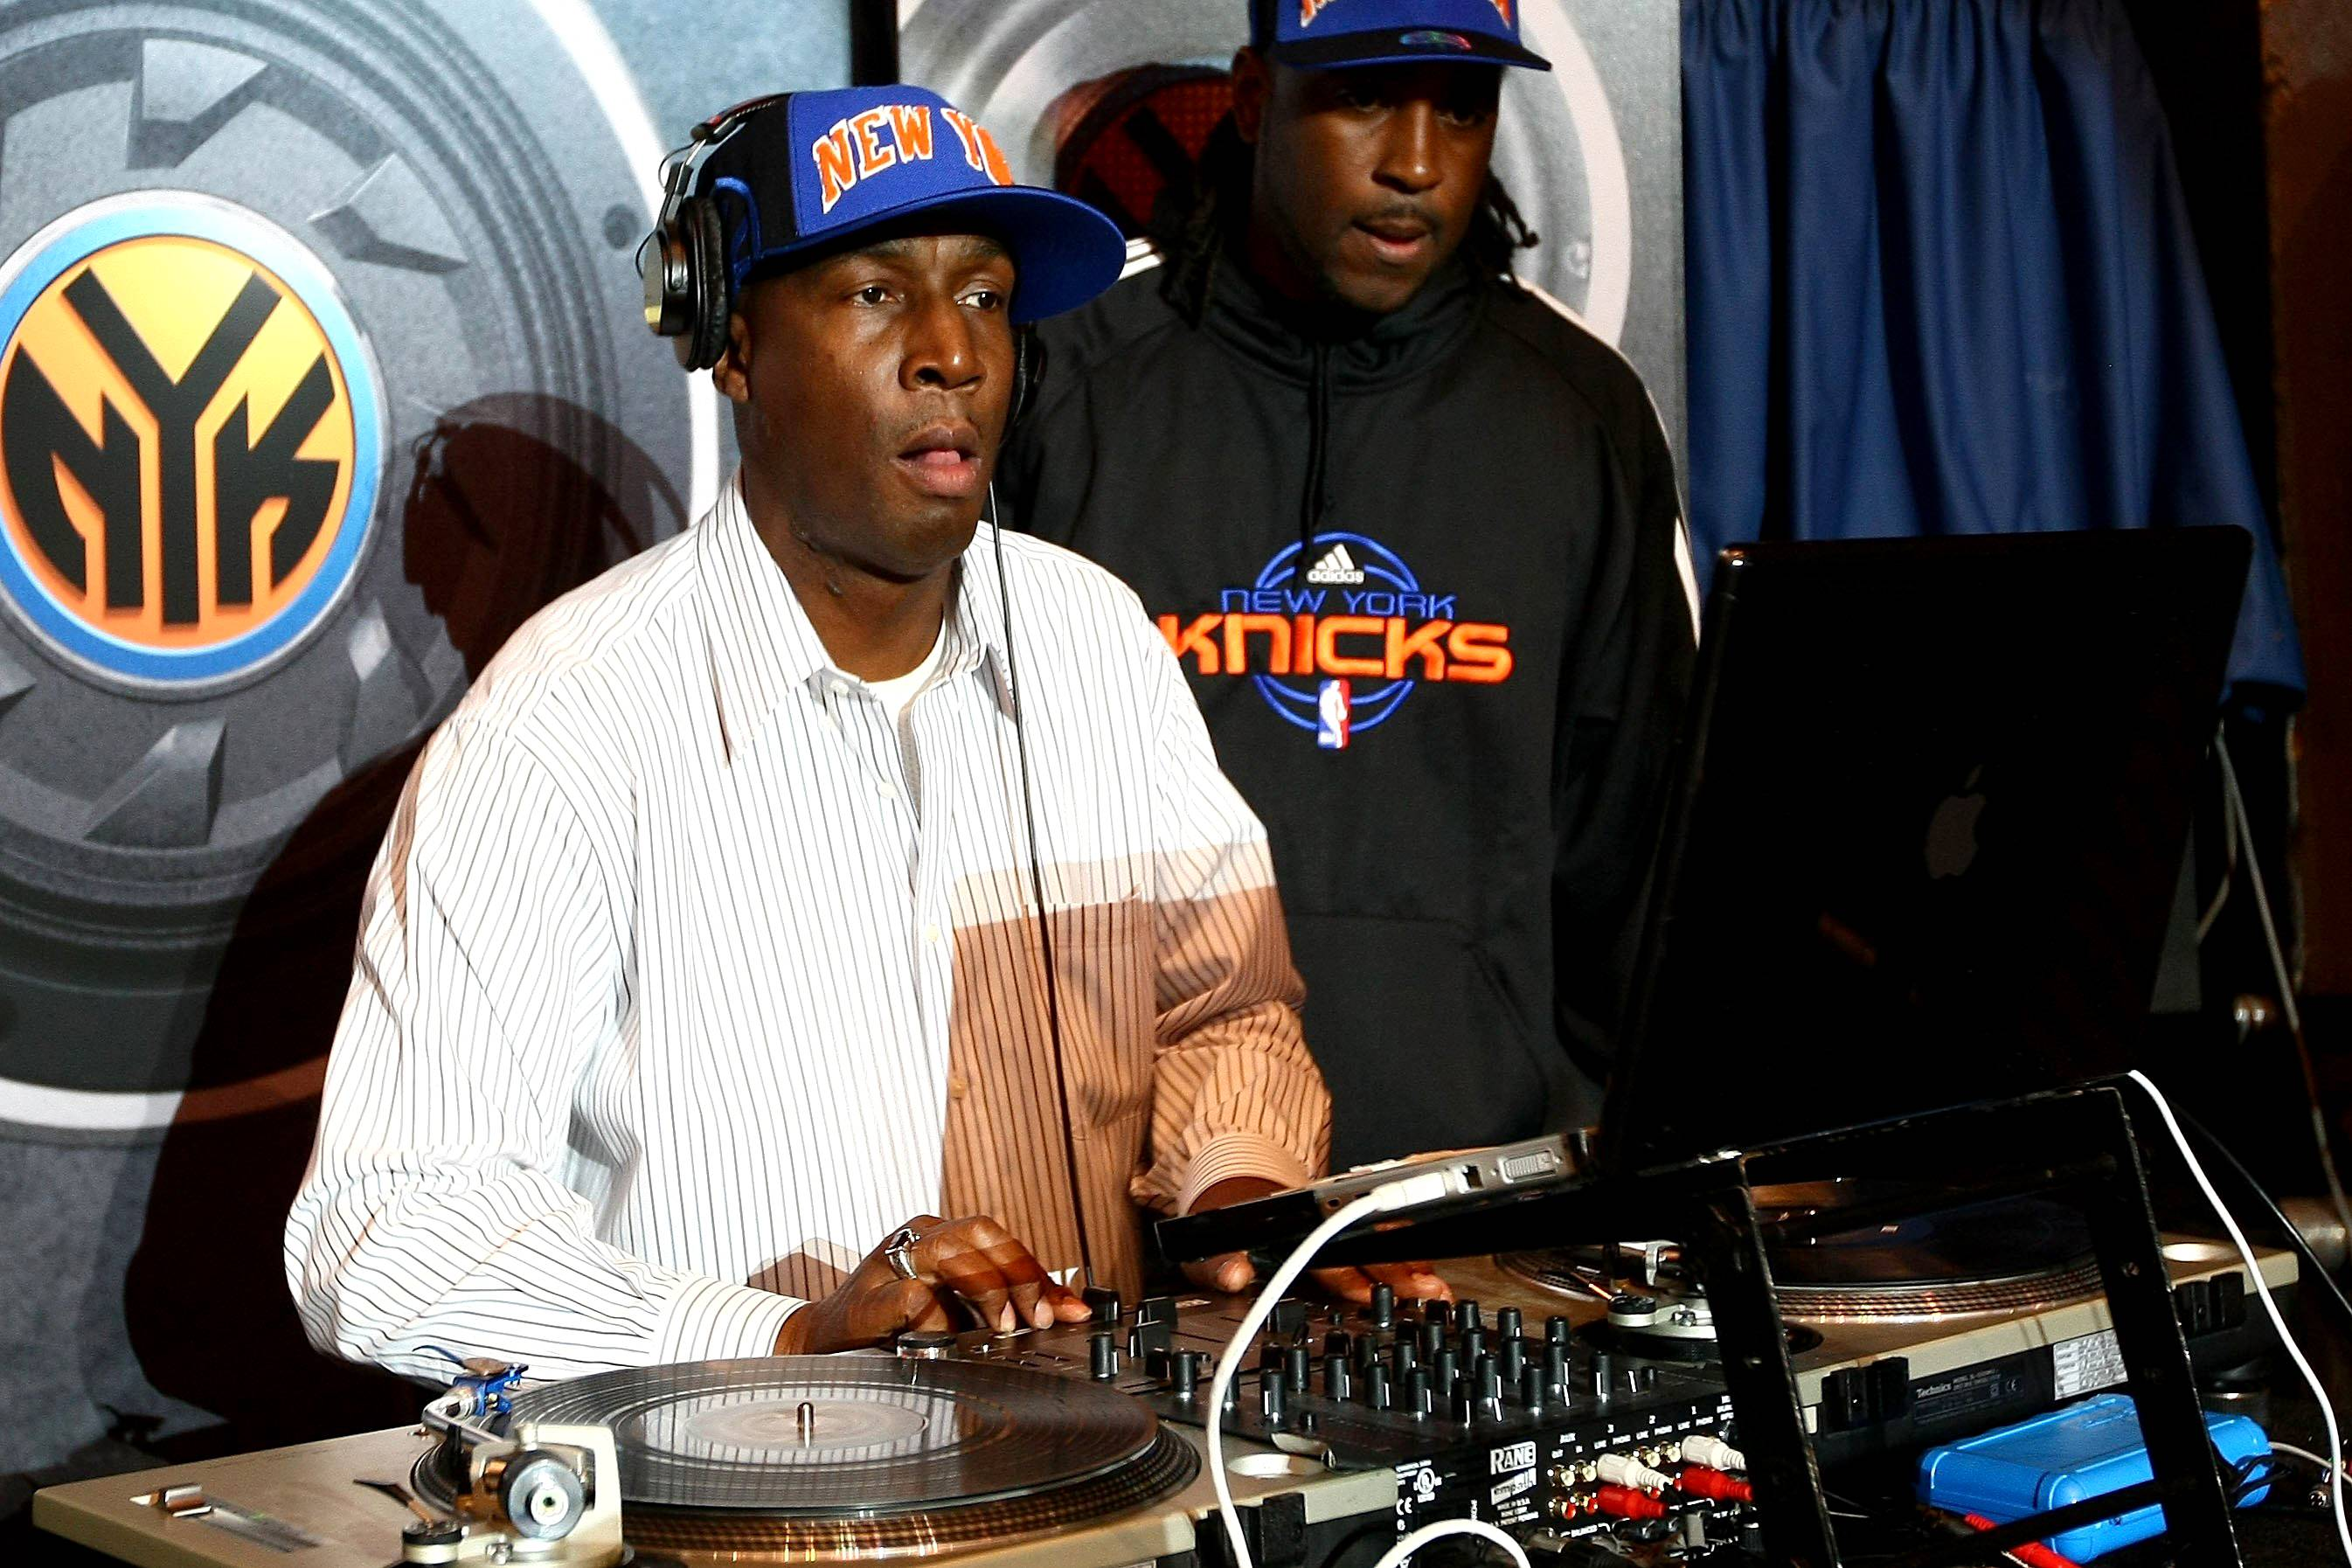 """1. Grandmaster Flash - Grandmaster Flash has left an indelible, impossible-to-miss mark on hip hop, popular music and DJing. A key party-rocker in rap's nascent South Bronx days, Flash is credited with inventing the cross-fader using discarded electronic parts found in a local junkyard. Later, as leader of Grandmaster Flash & the Furious Five, he was behind two seminal records: """"The Adventures of Grandmaster Flash on the Wheels of Steel,"""" an instrumental turntable solo that marked the first time scratching was recorded on wax; and """"The Message,"""" the hugely influential prototype for all socio-political rap to follow. Flash and the Furious Five were the first hip hop group to be inducted into the Rock 'N Roll Hall of Fame, in 2007. (Photo: Chris McGrath/Getty Images)"""